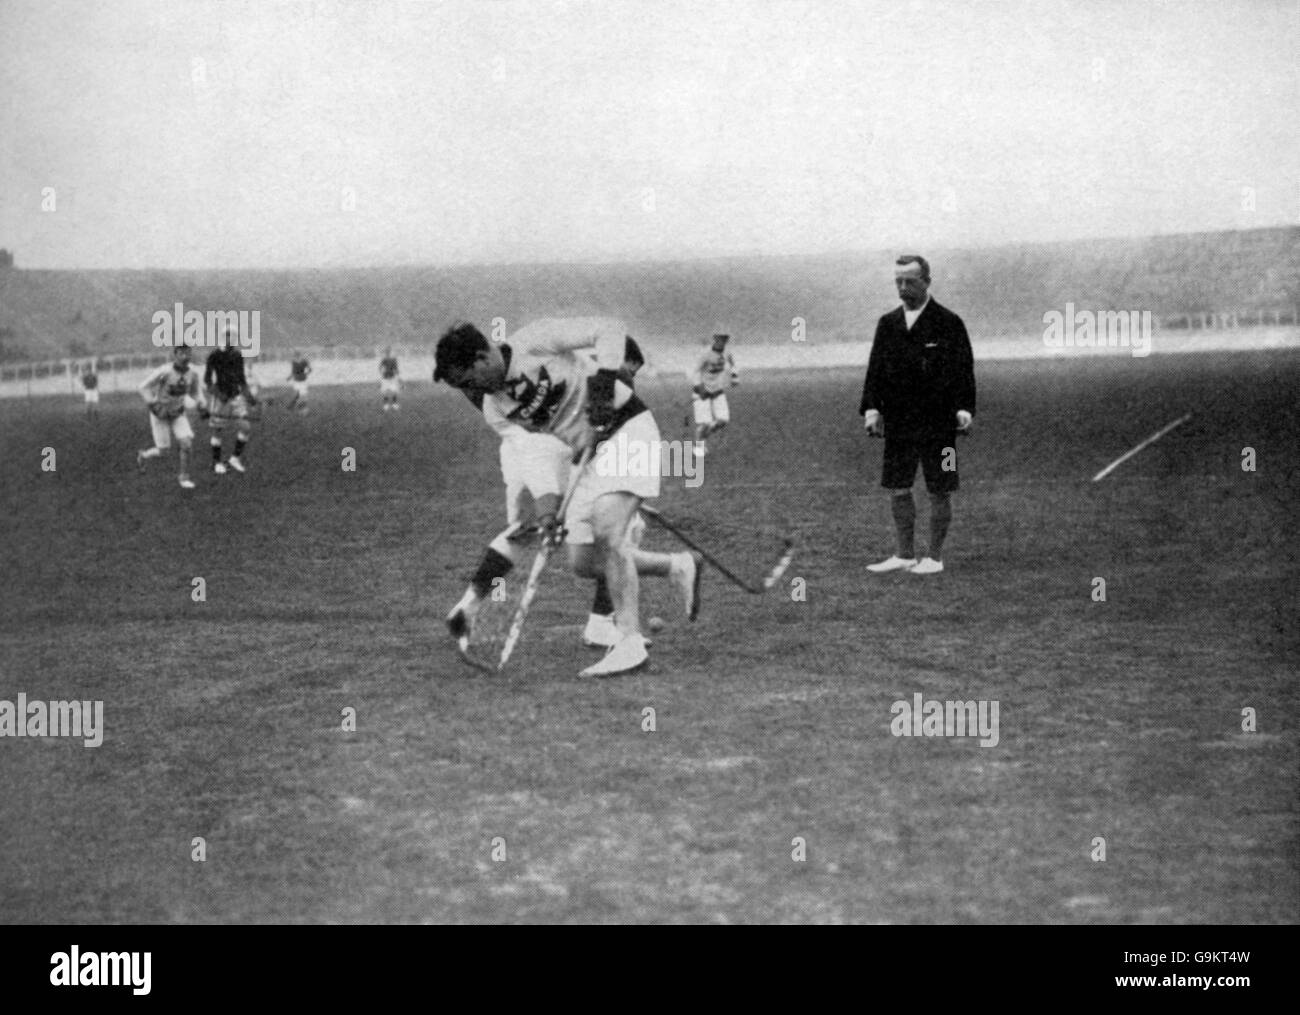 Lacrosse - London Olympic Games 1908 - Final - Great Britain v Canada - White City Stock Photo